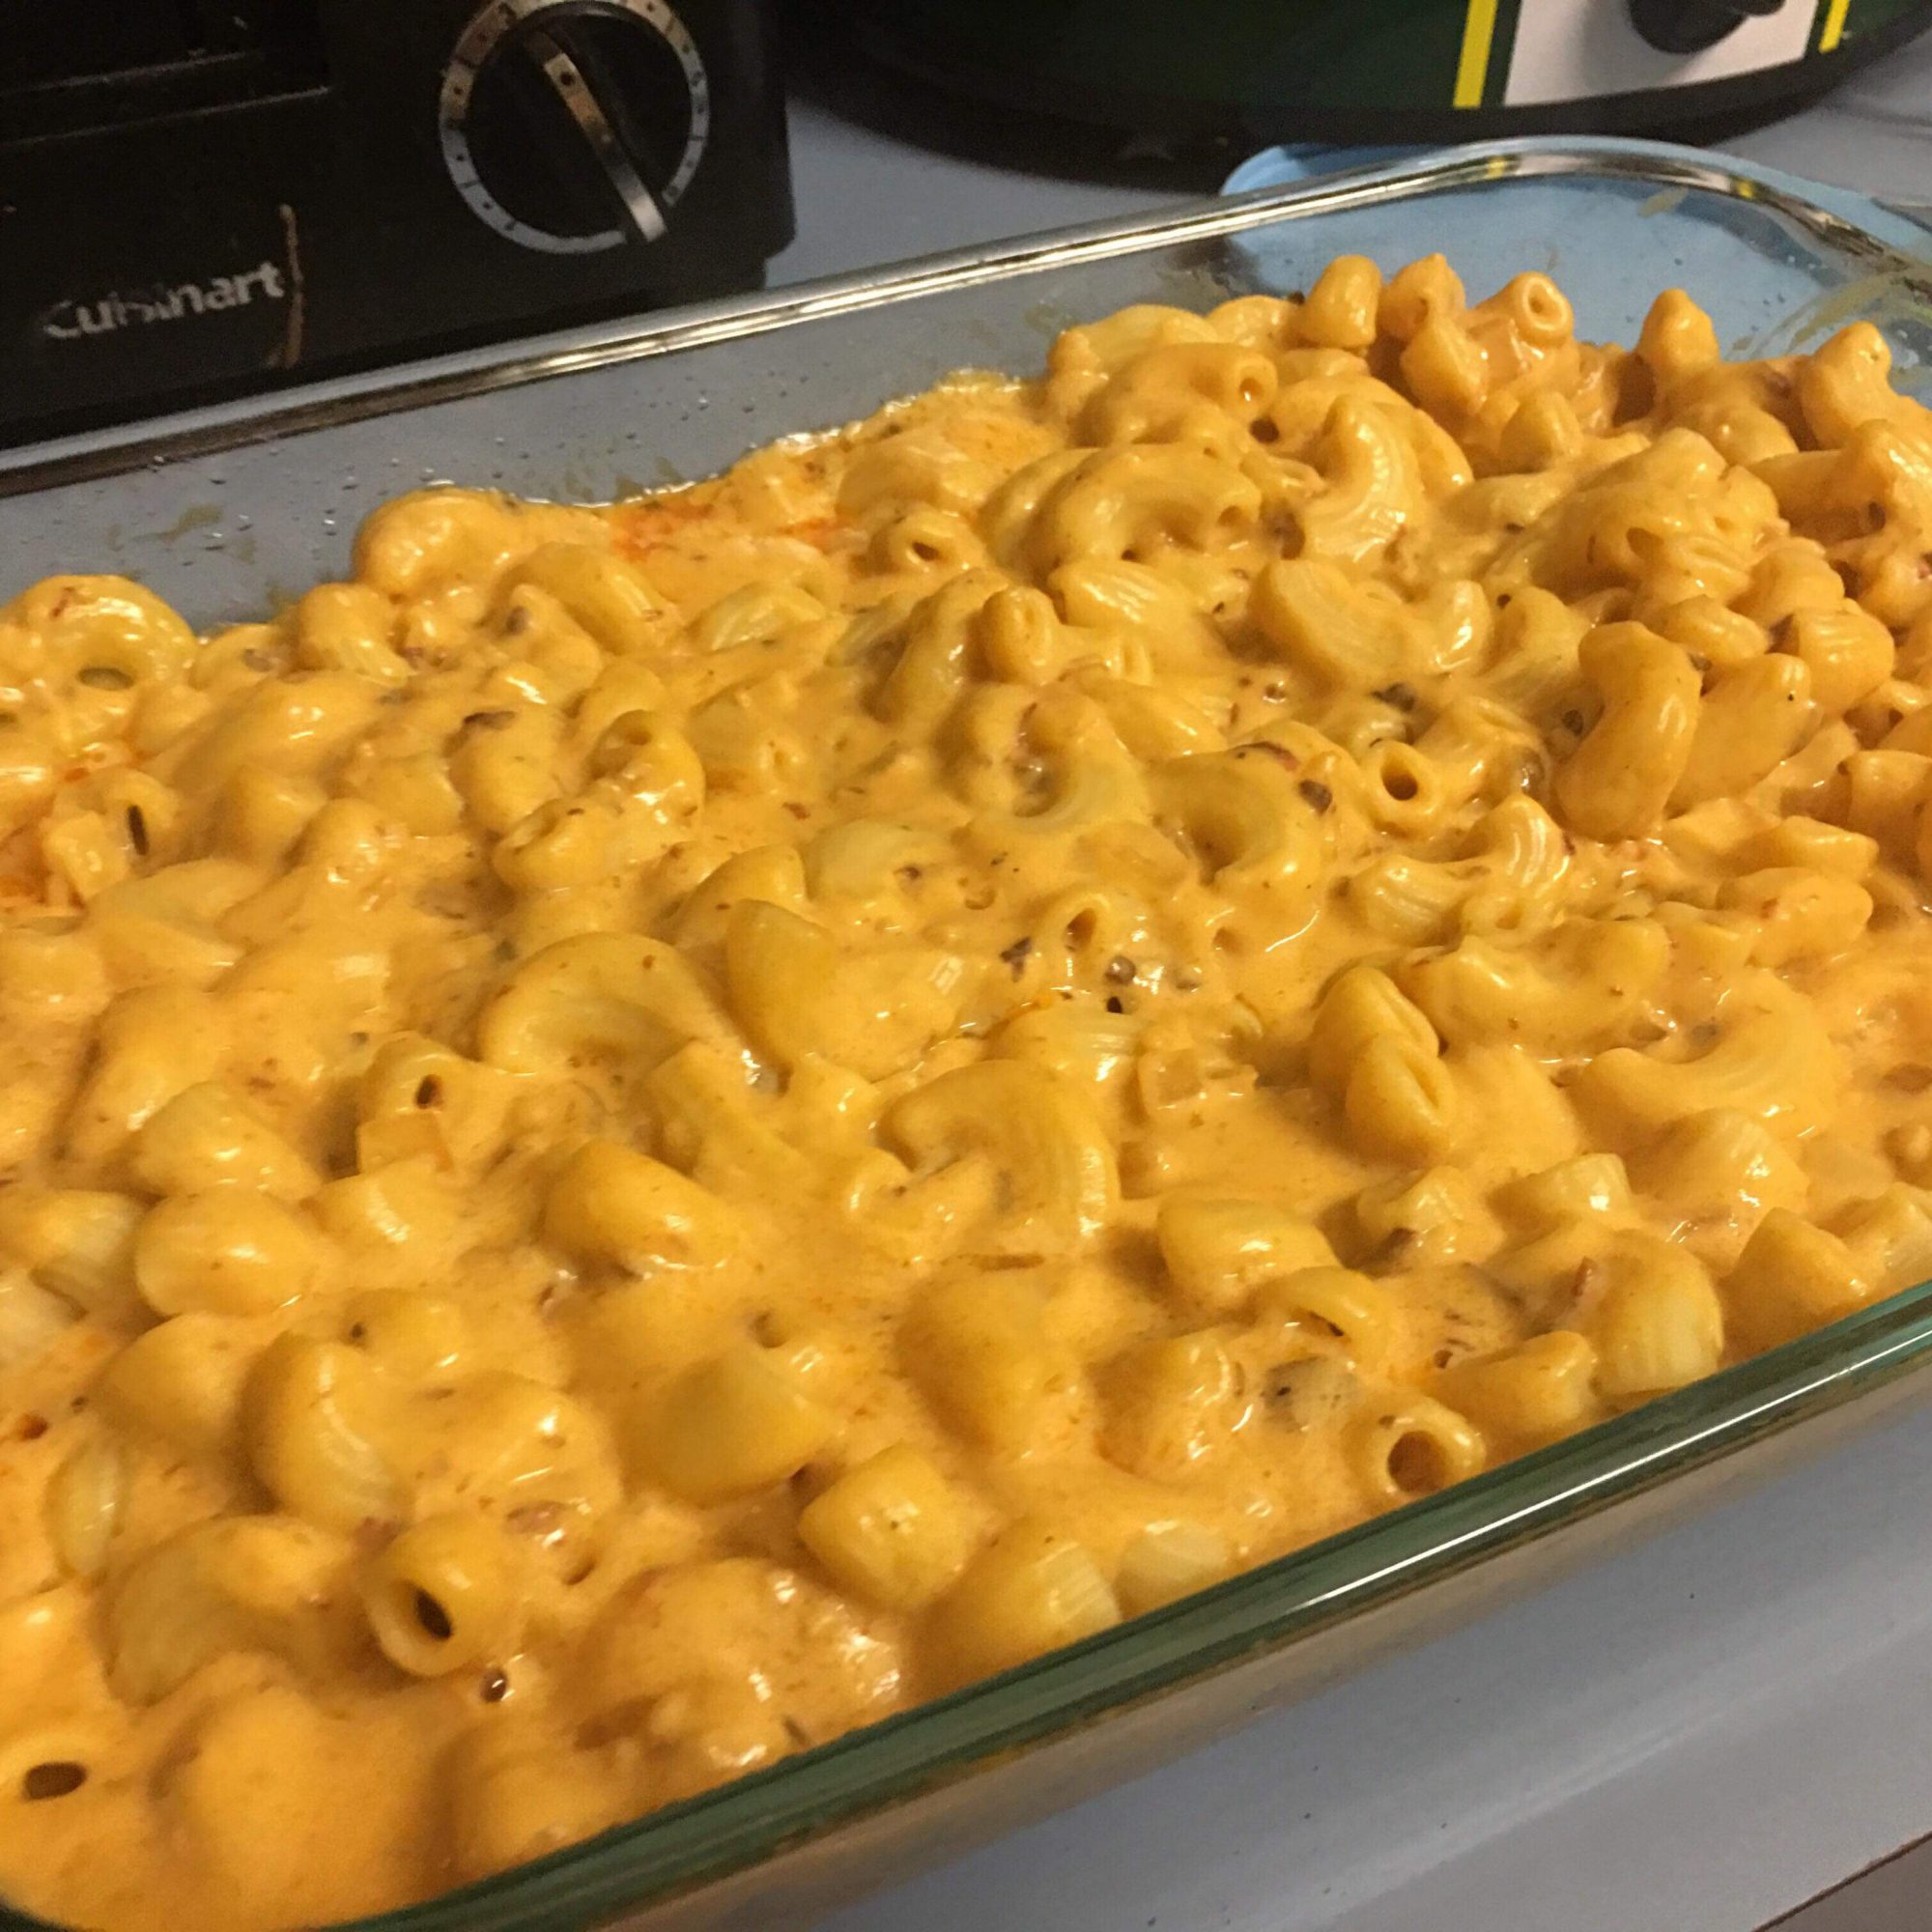 Chipotle Mac and Cheese in a glass casserole dish